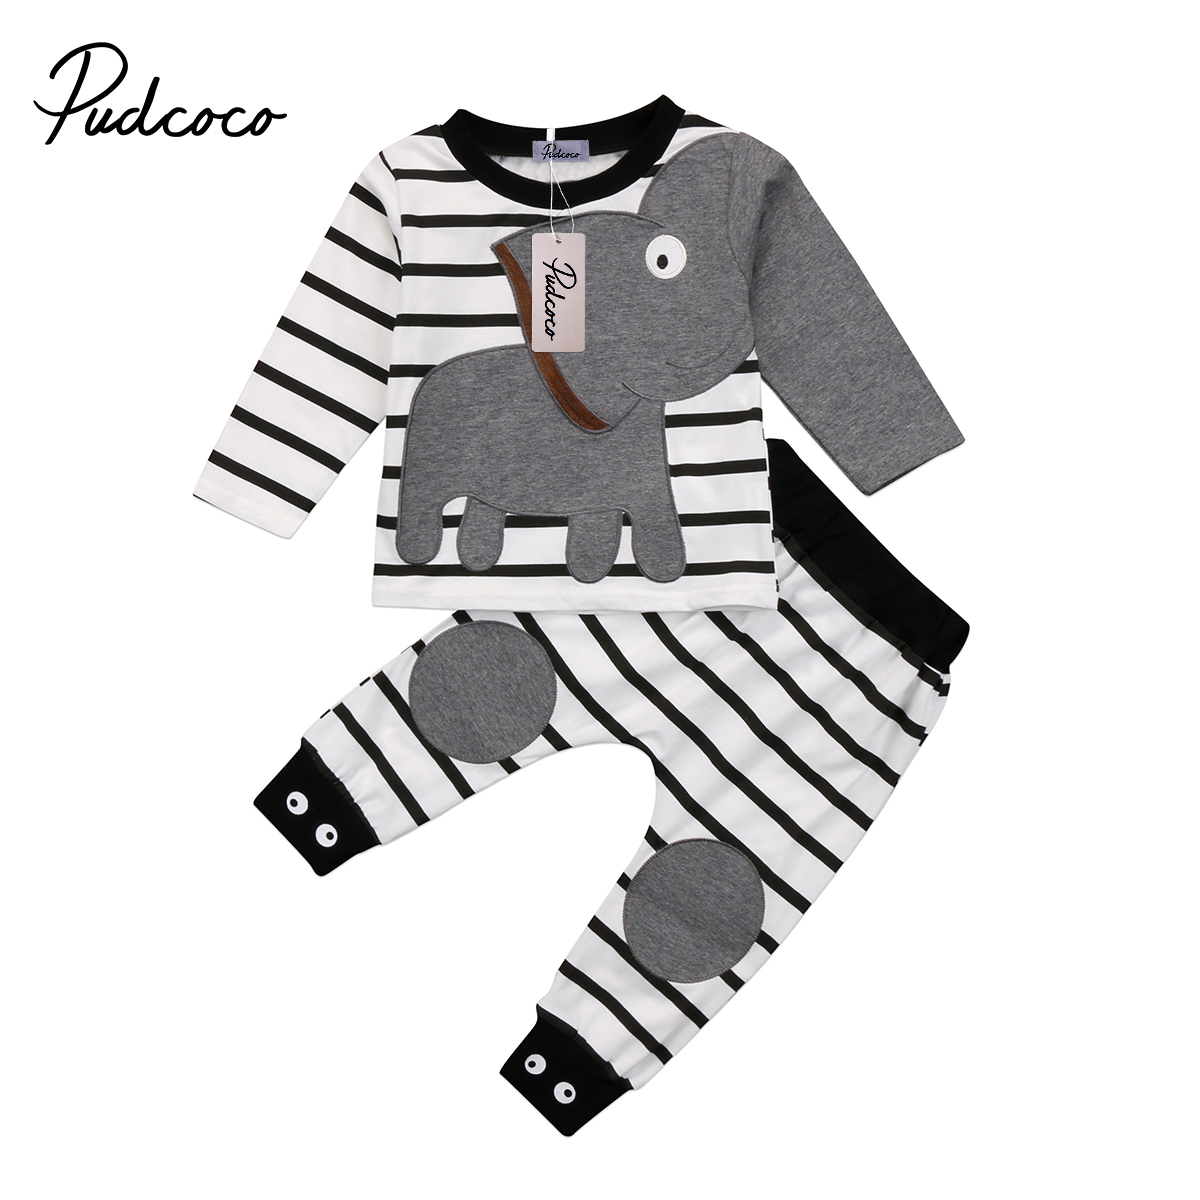 Pudcoco Cotton Newborn Kids Baby Boy Girl Elephant Striped Clothing Set Long Sleeve Tops T-shirt+Pants 2pcs Outfits kids baby boy long sleeve gentleman t shirt tops long pants 2pcs outfits clothing set hot